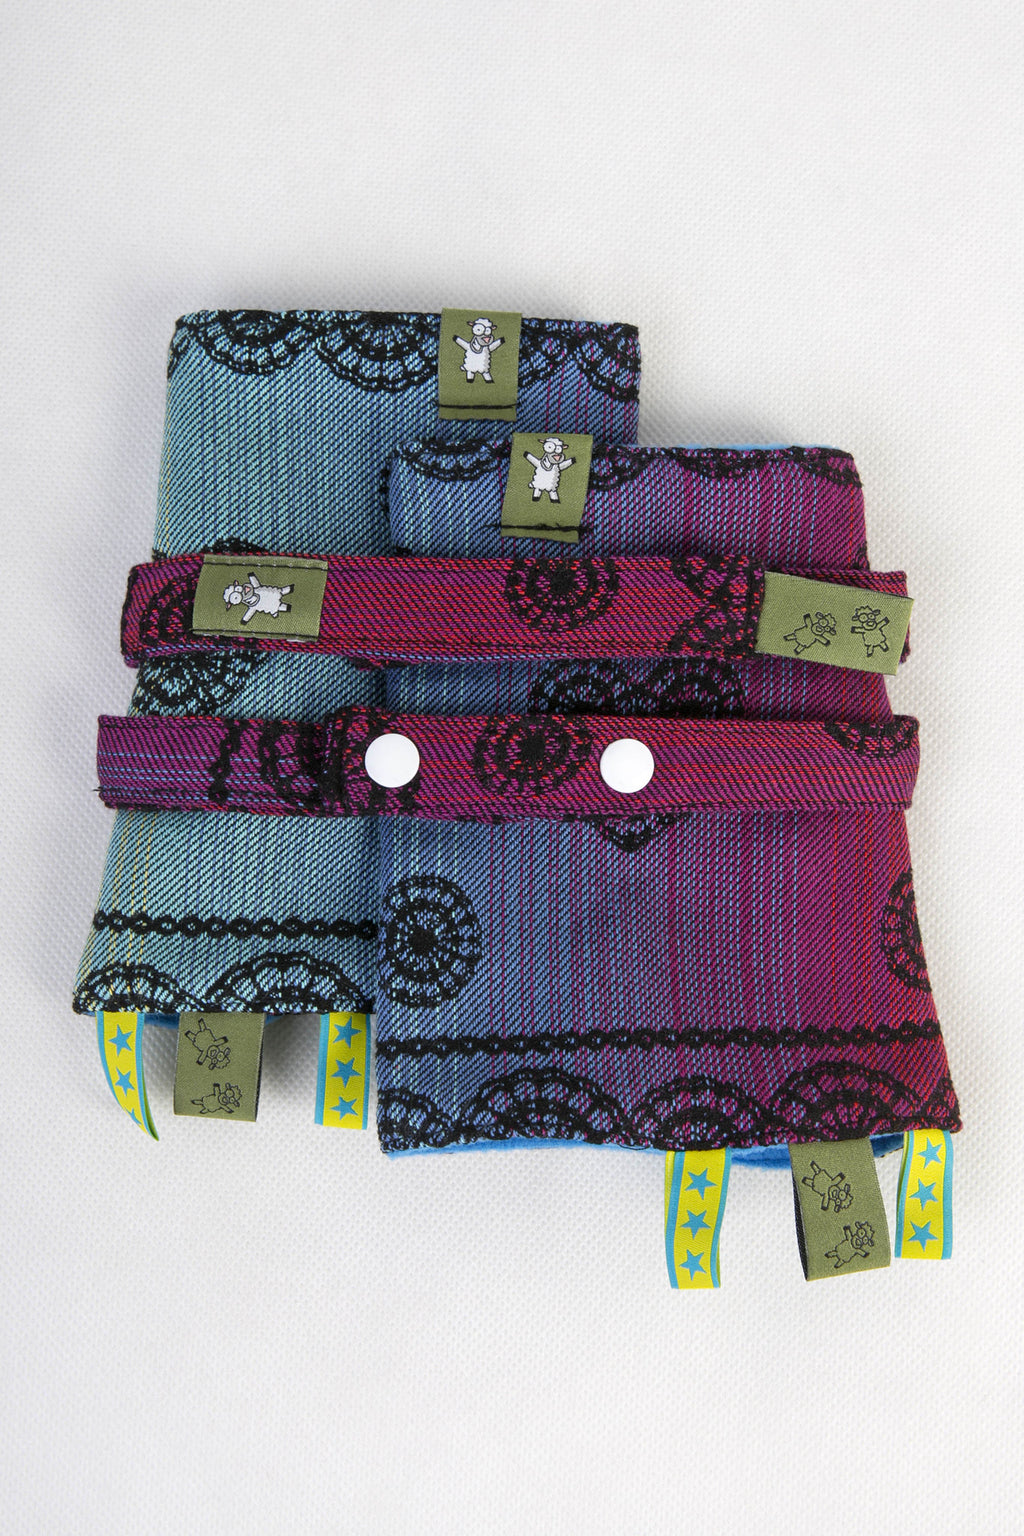 Lenny Lamb Drool Pads and Reach Straps Set Rainbow Lace Dark